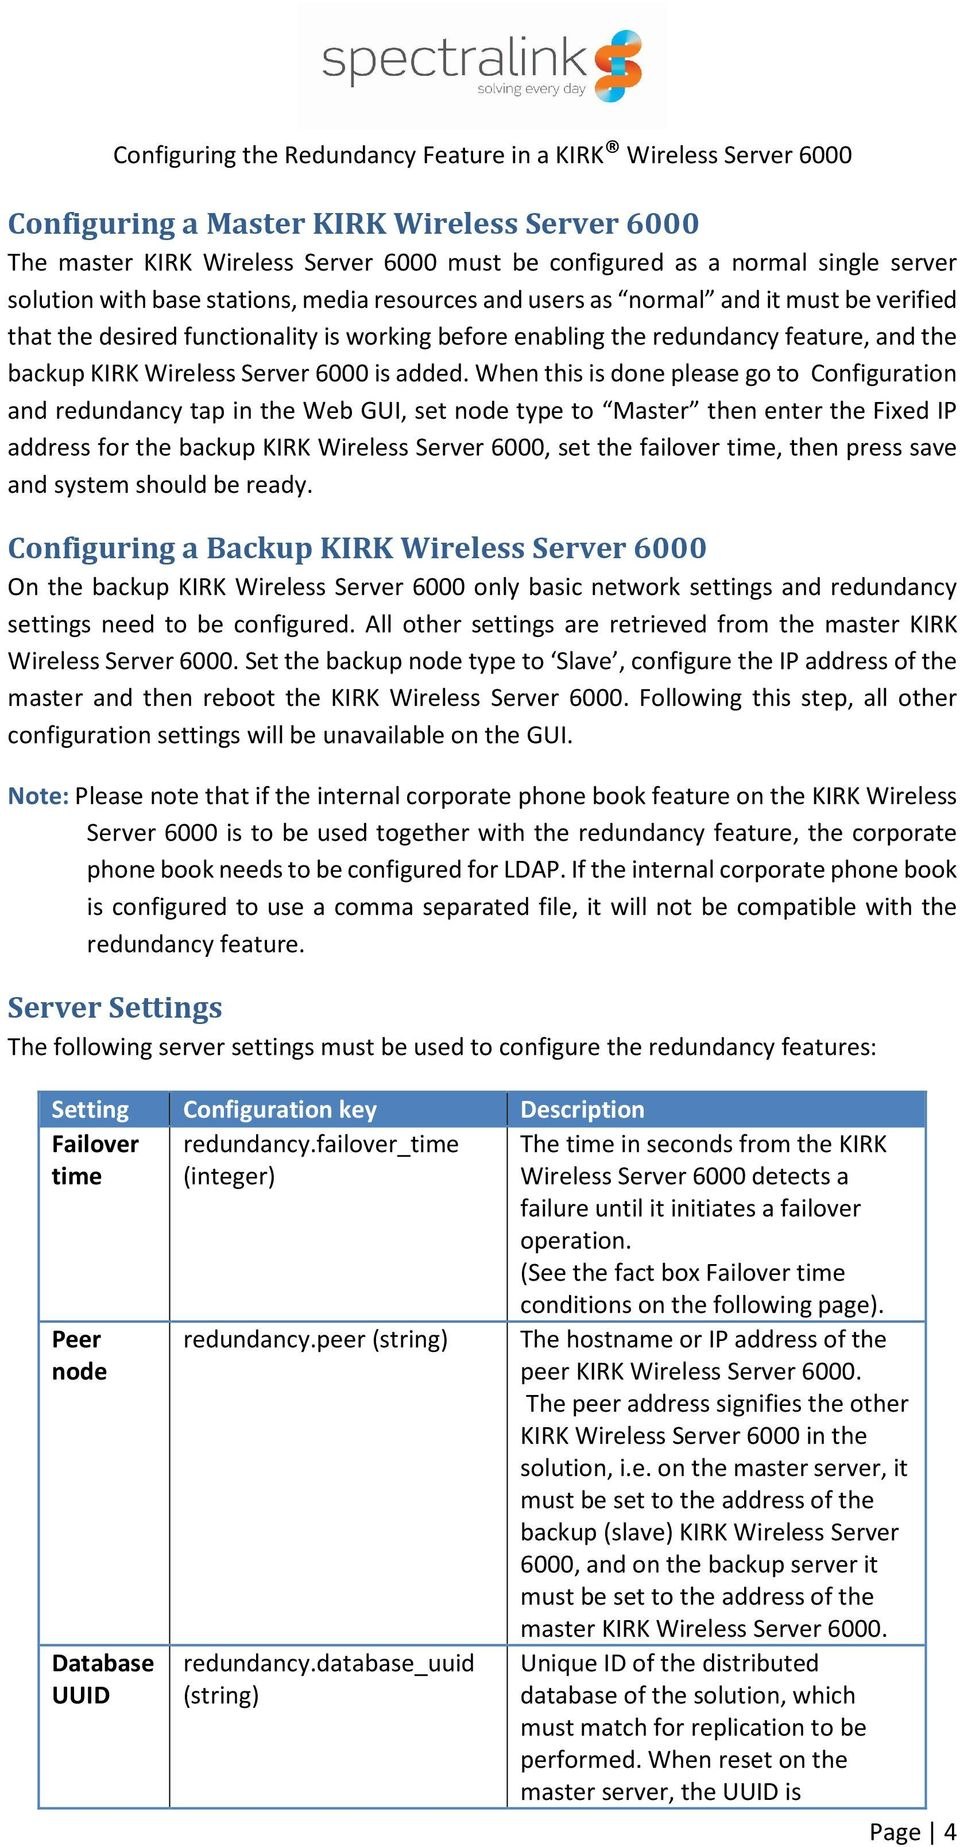 When this is done please go to Configuration and redundancy tap in the Web GUI, set node type to Master then enter the Fixed IP address for the backup KIRK Wireless Server 6000, set the failover